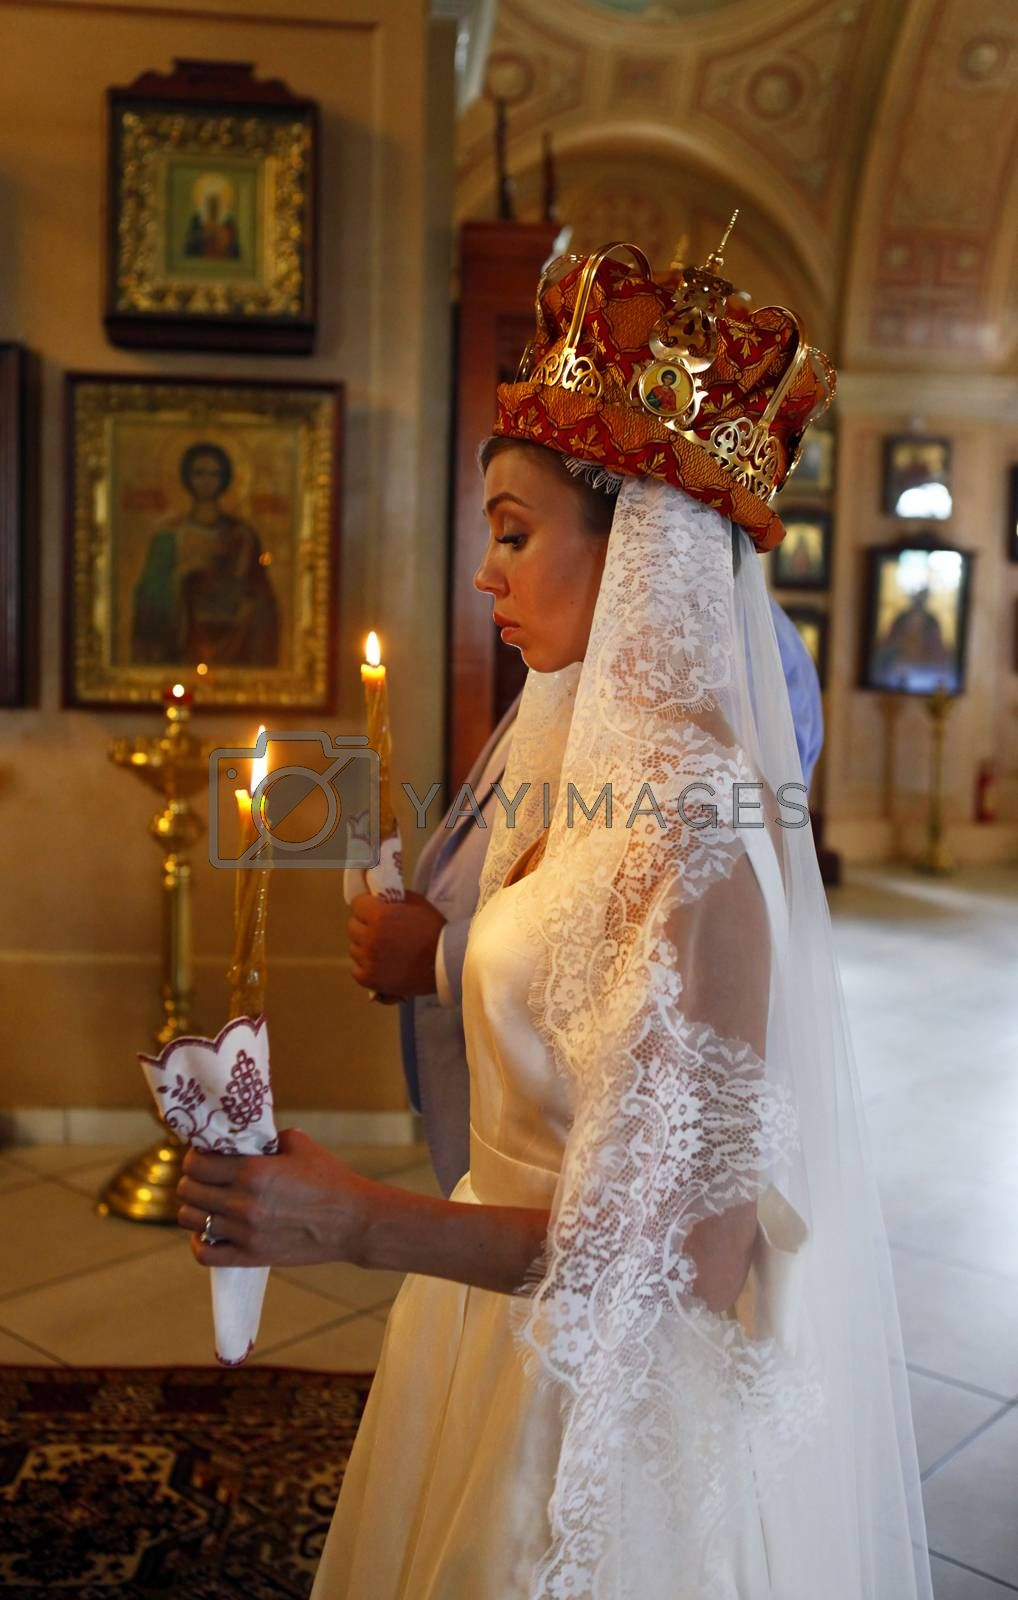 The beautiful wedding ceremony in the Russian Church. Moscow, Russia